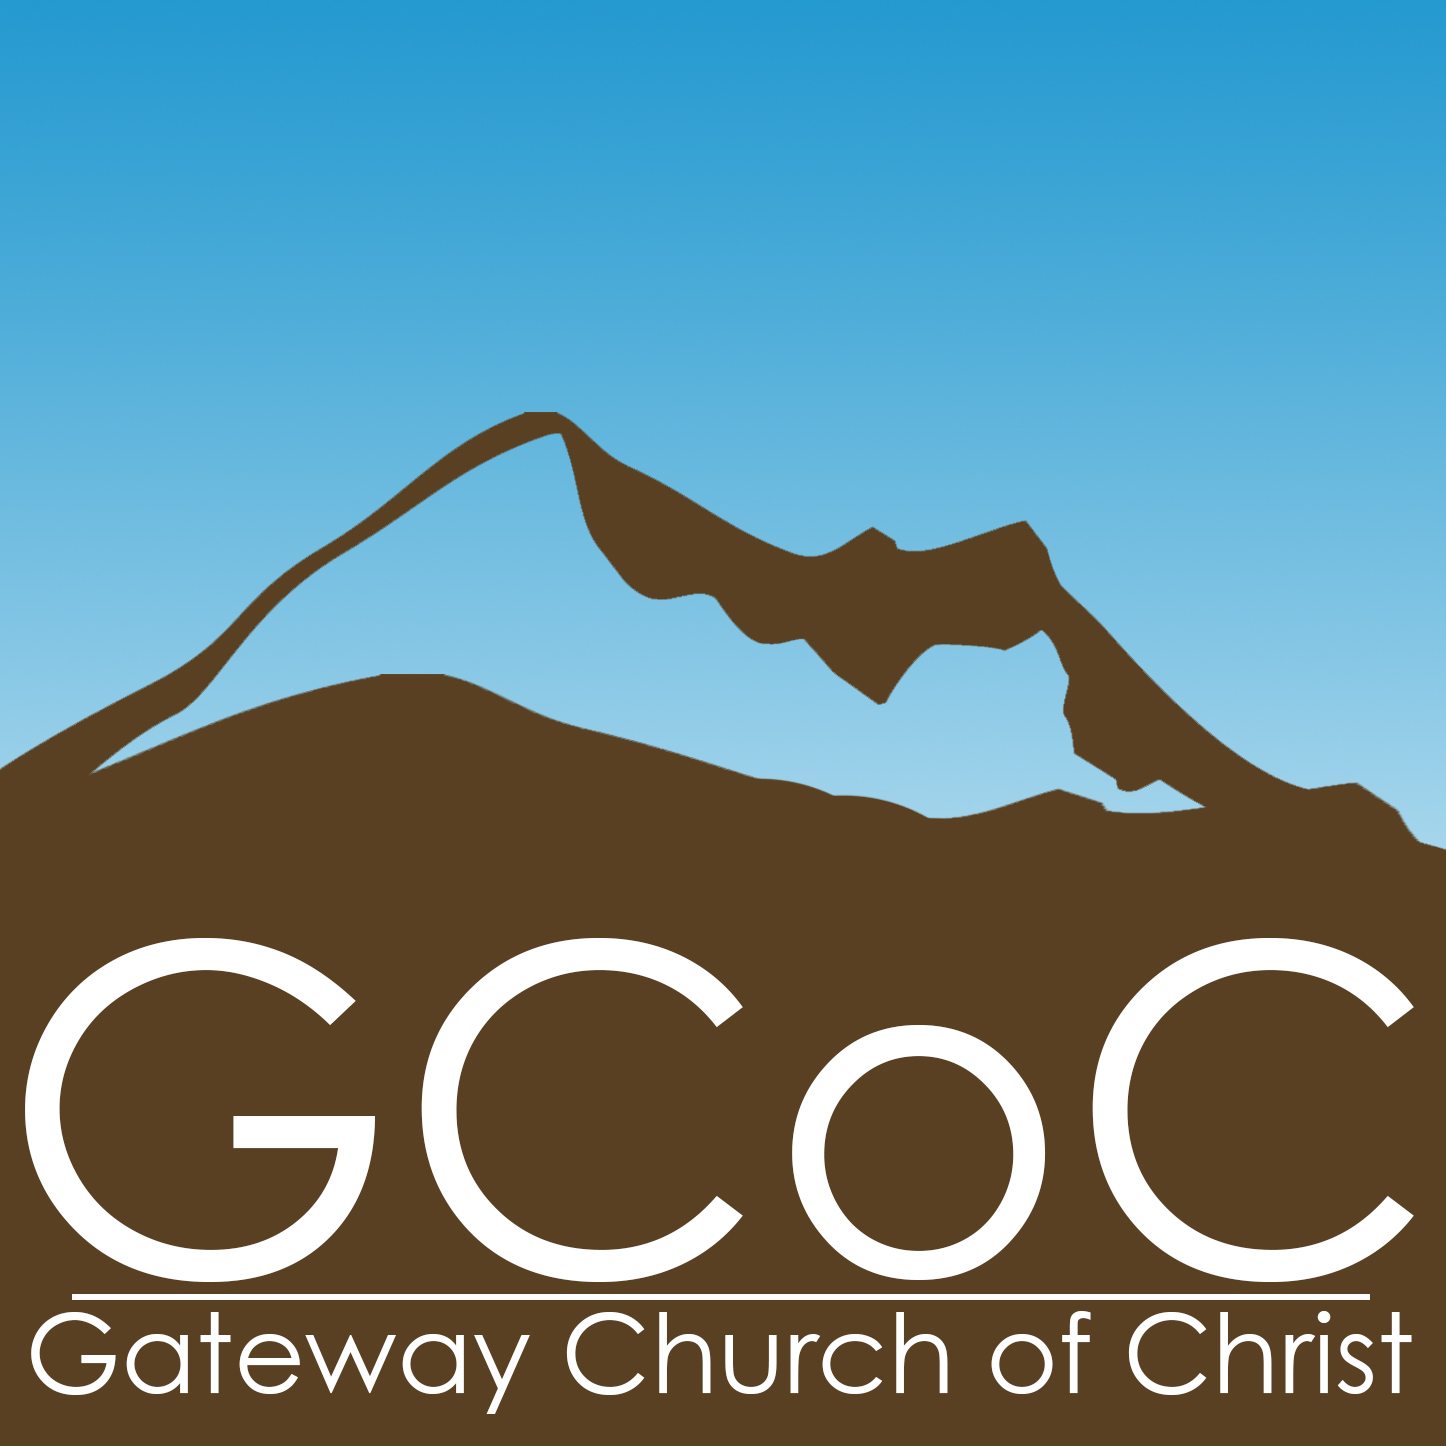 Gateway Church of Christ Sermons - GCoC